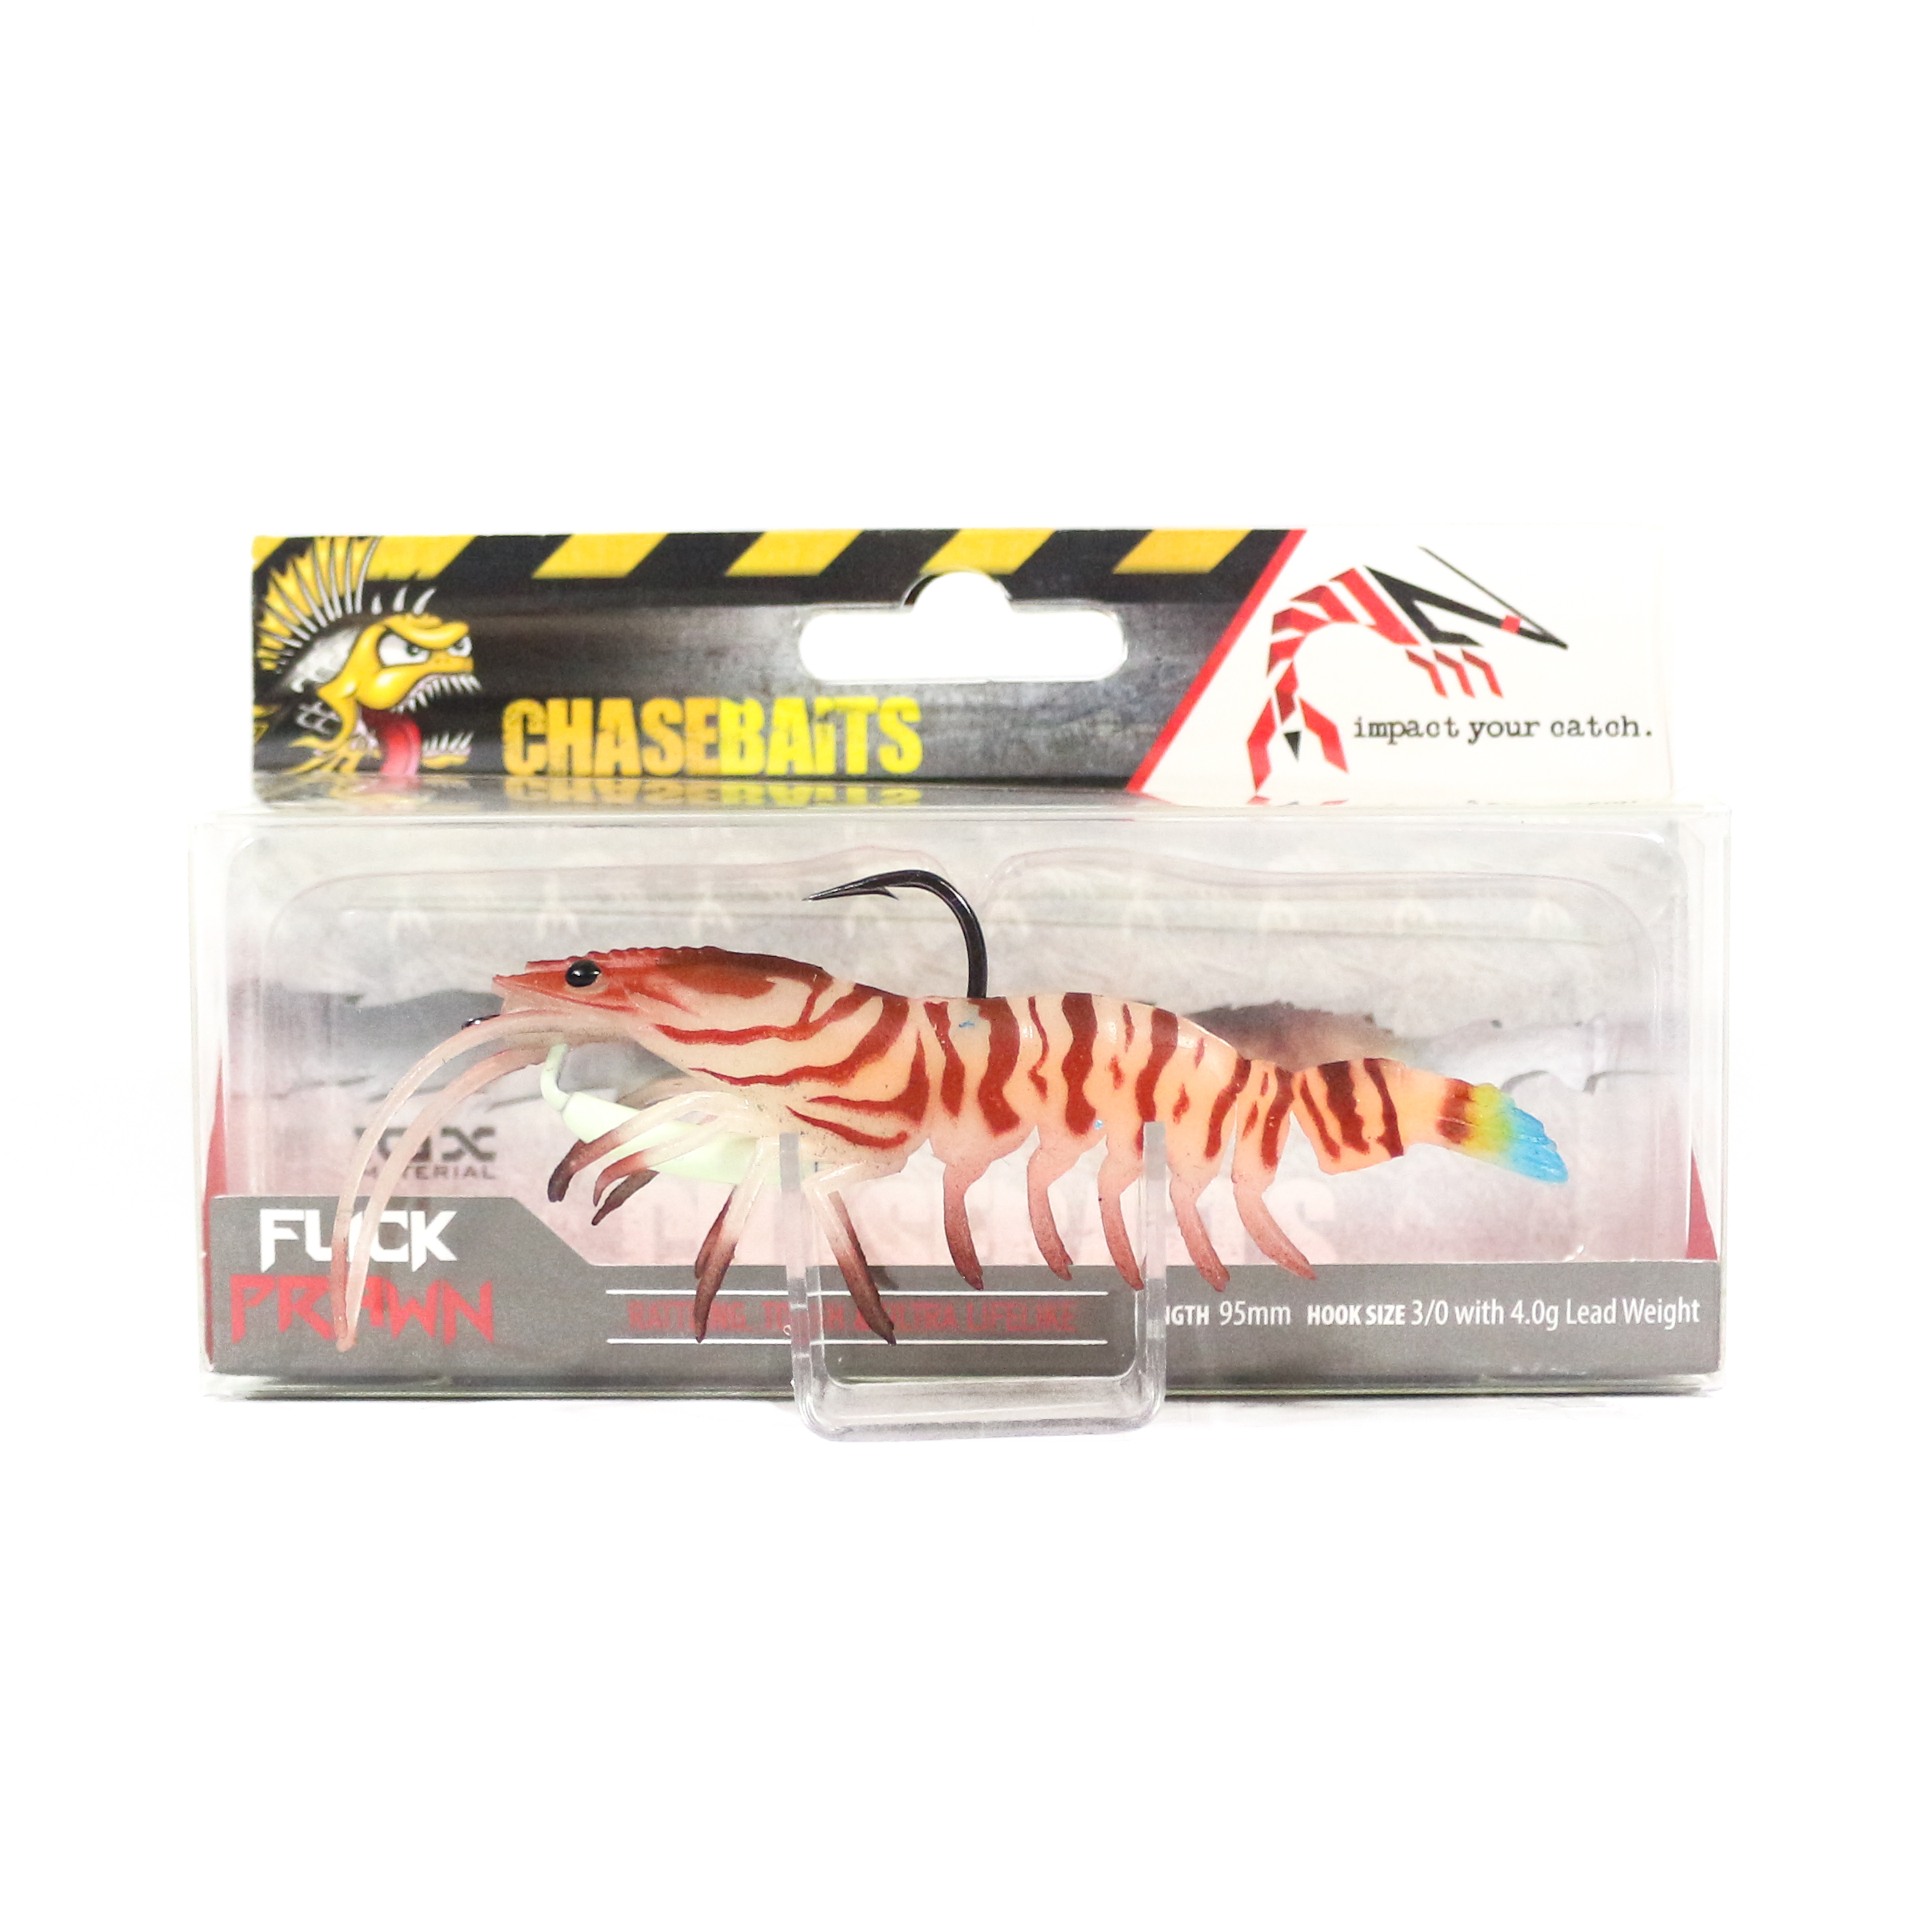 Chase Baits Soft Lure Flick Prawn 95 mm Tiger Prawn (4857)